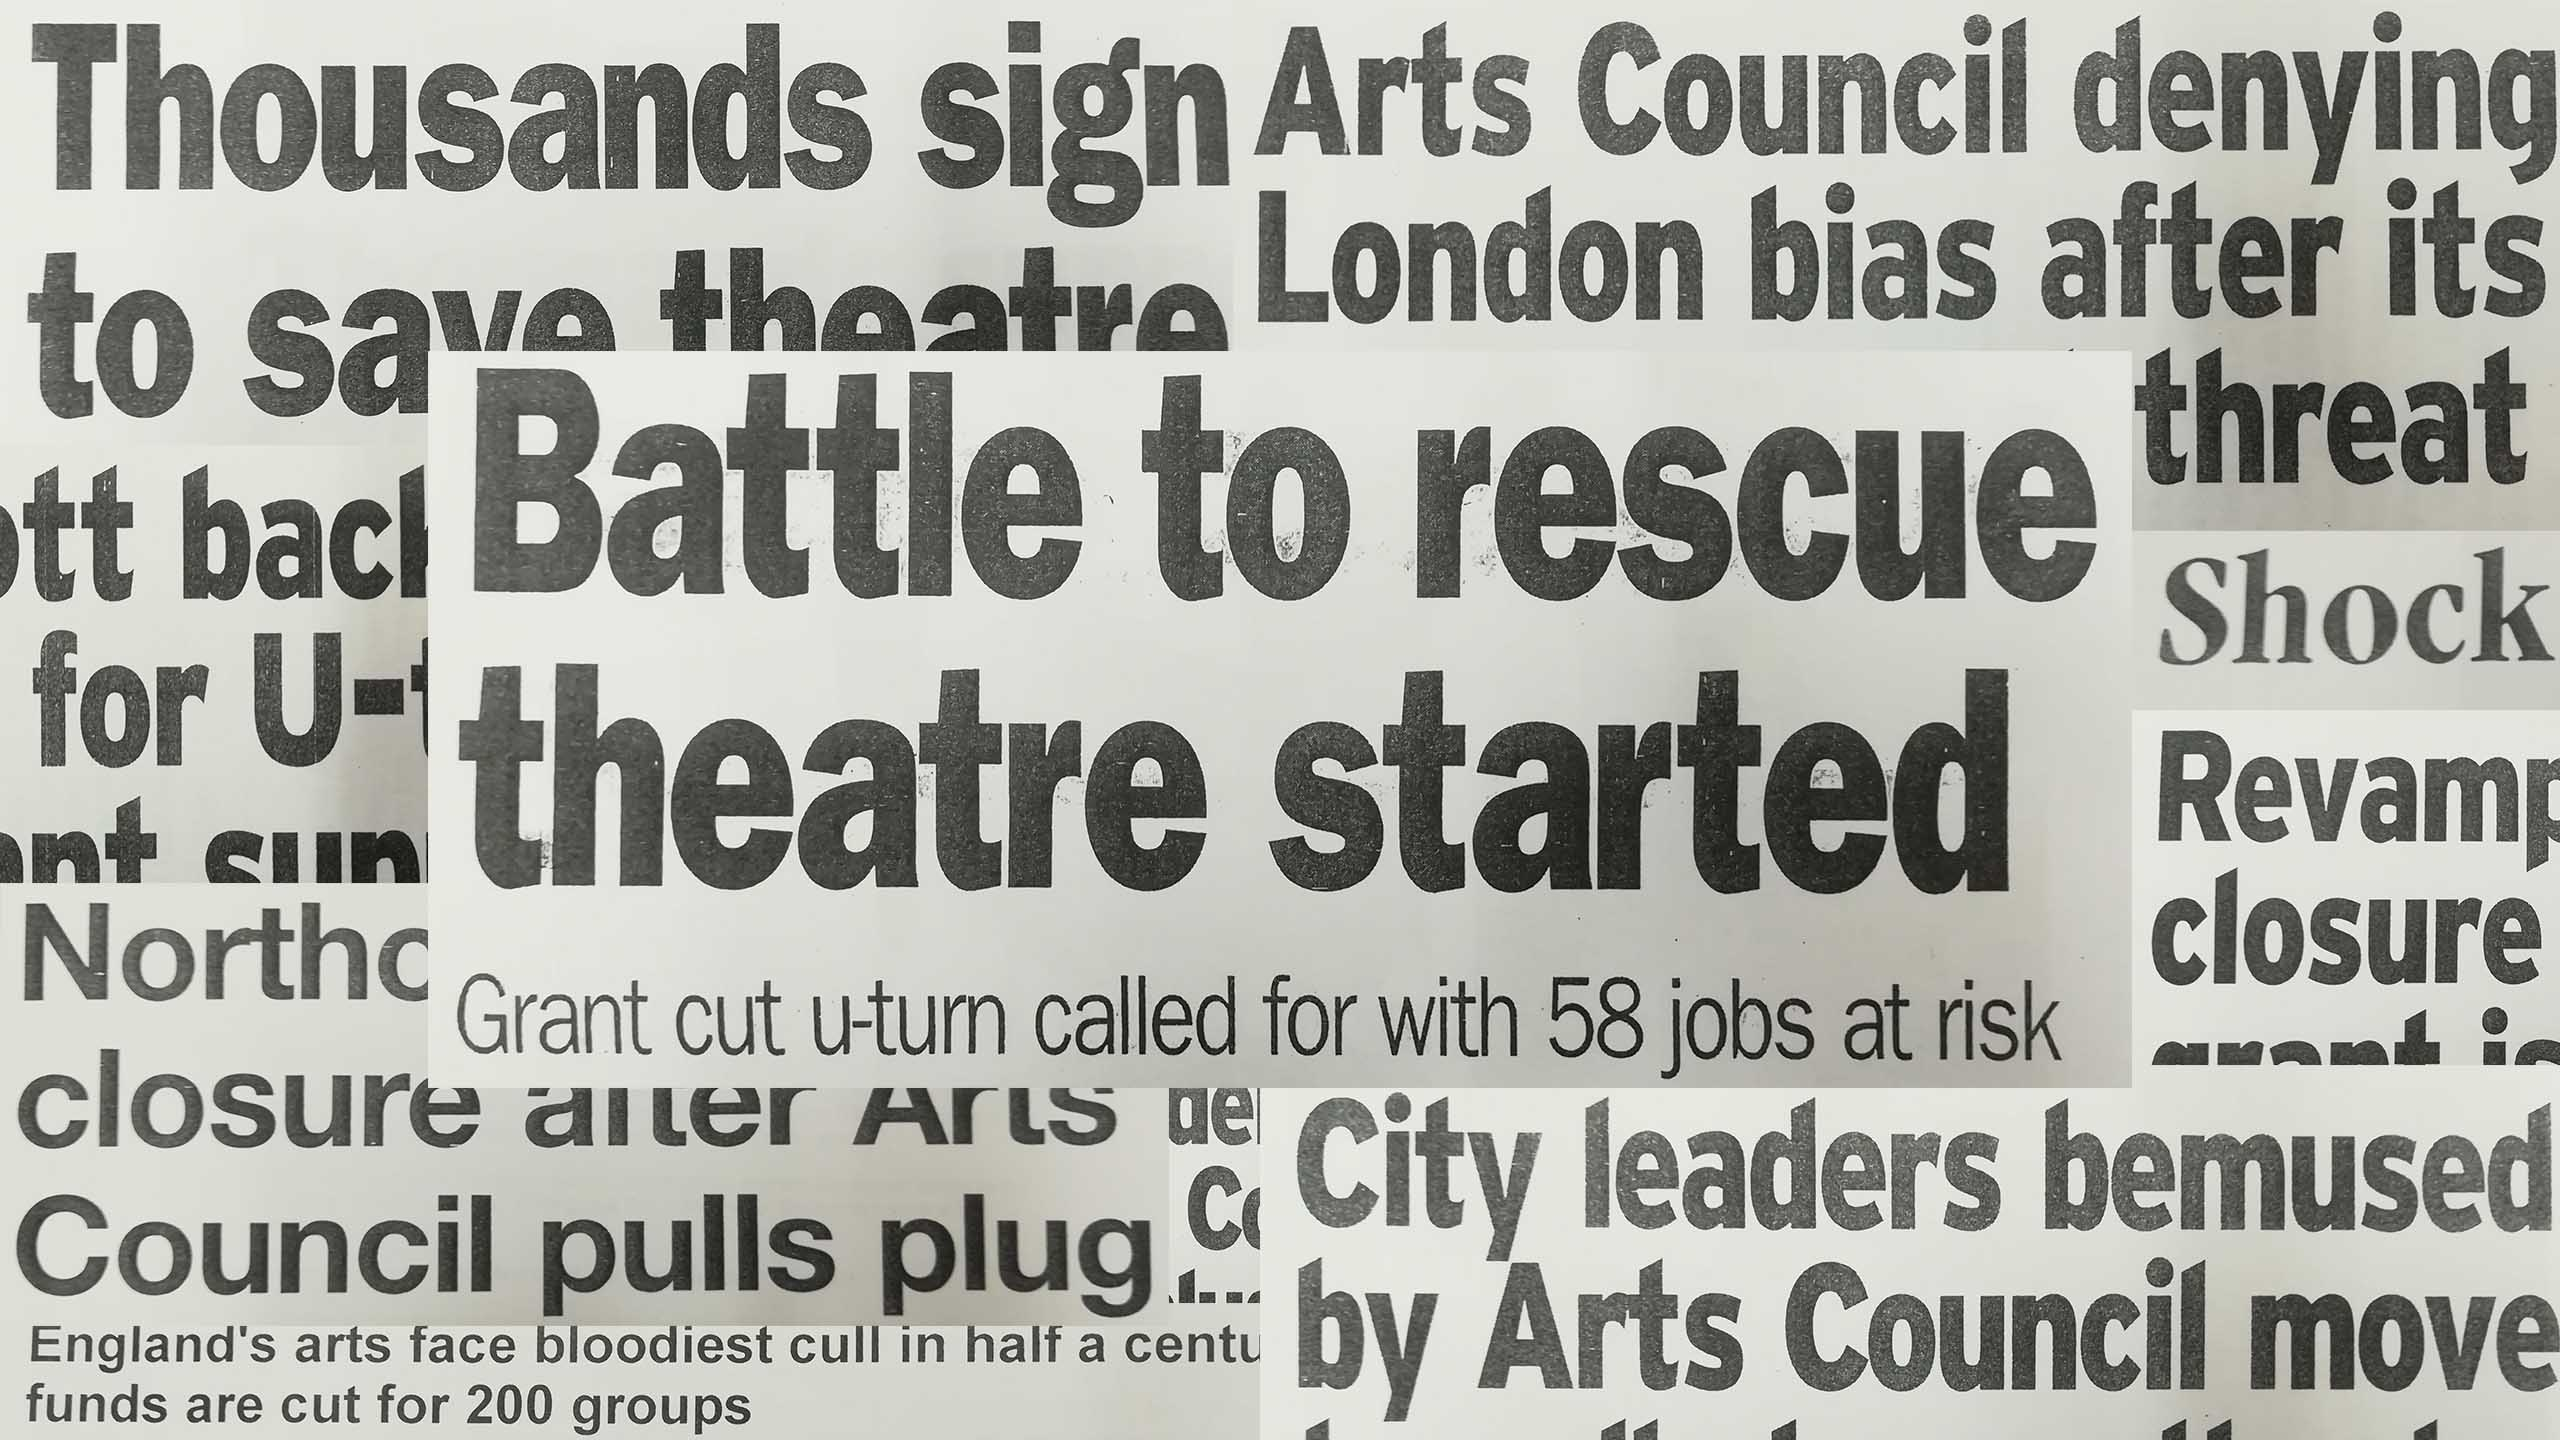 Headlines covering the cuts to the Northcott Theatre's grant